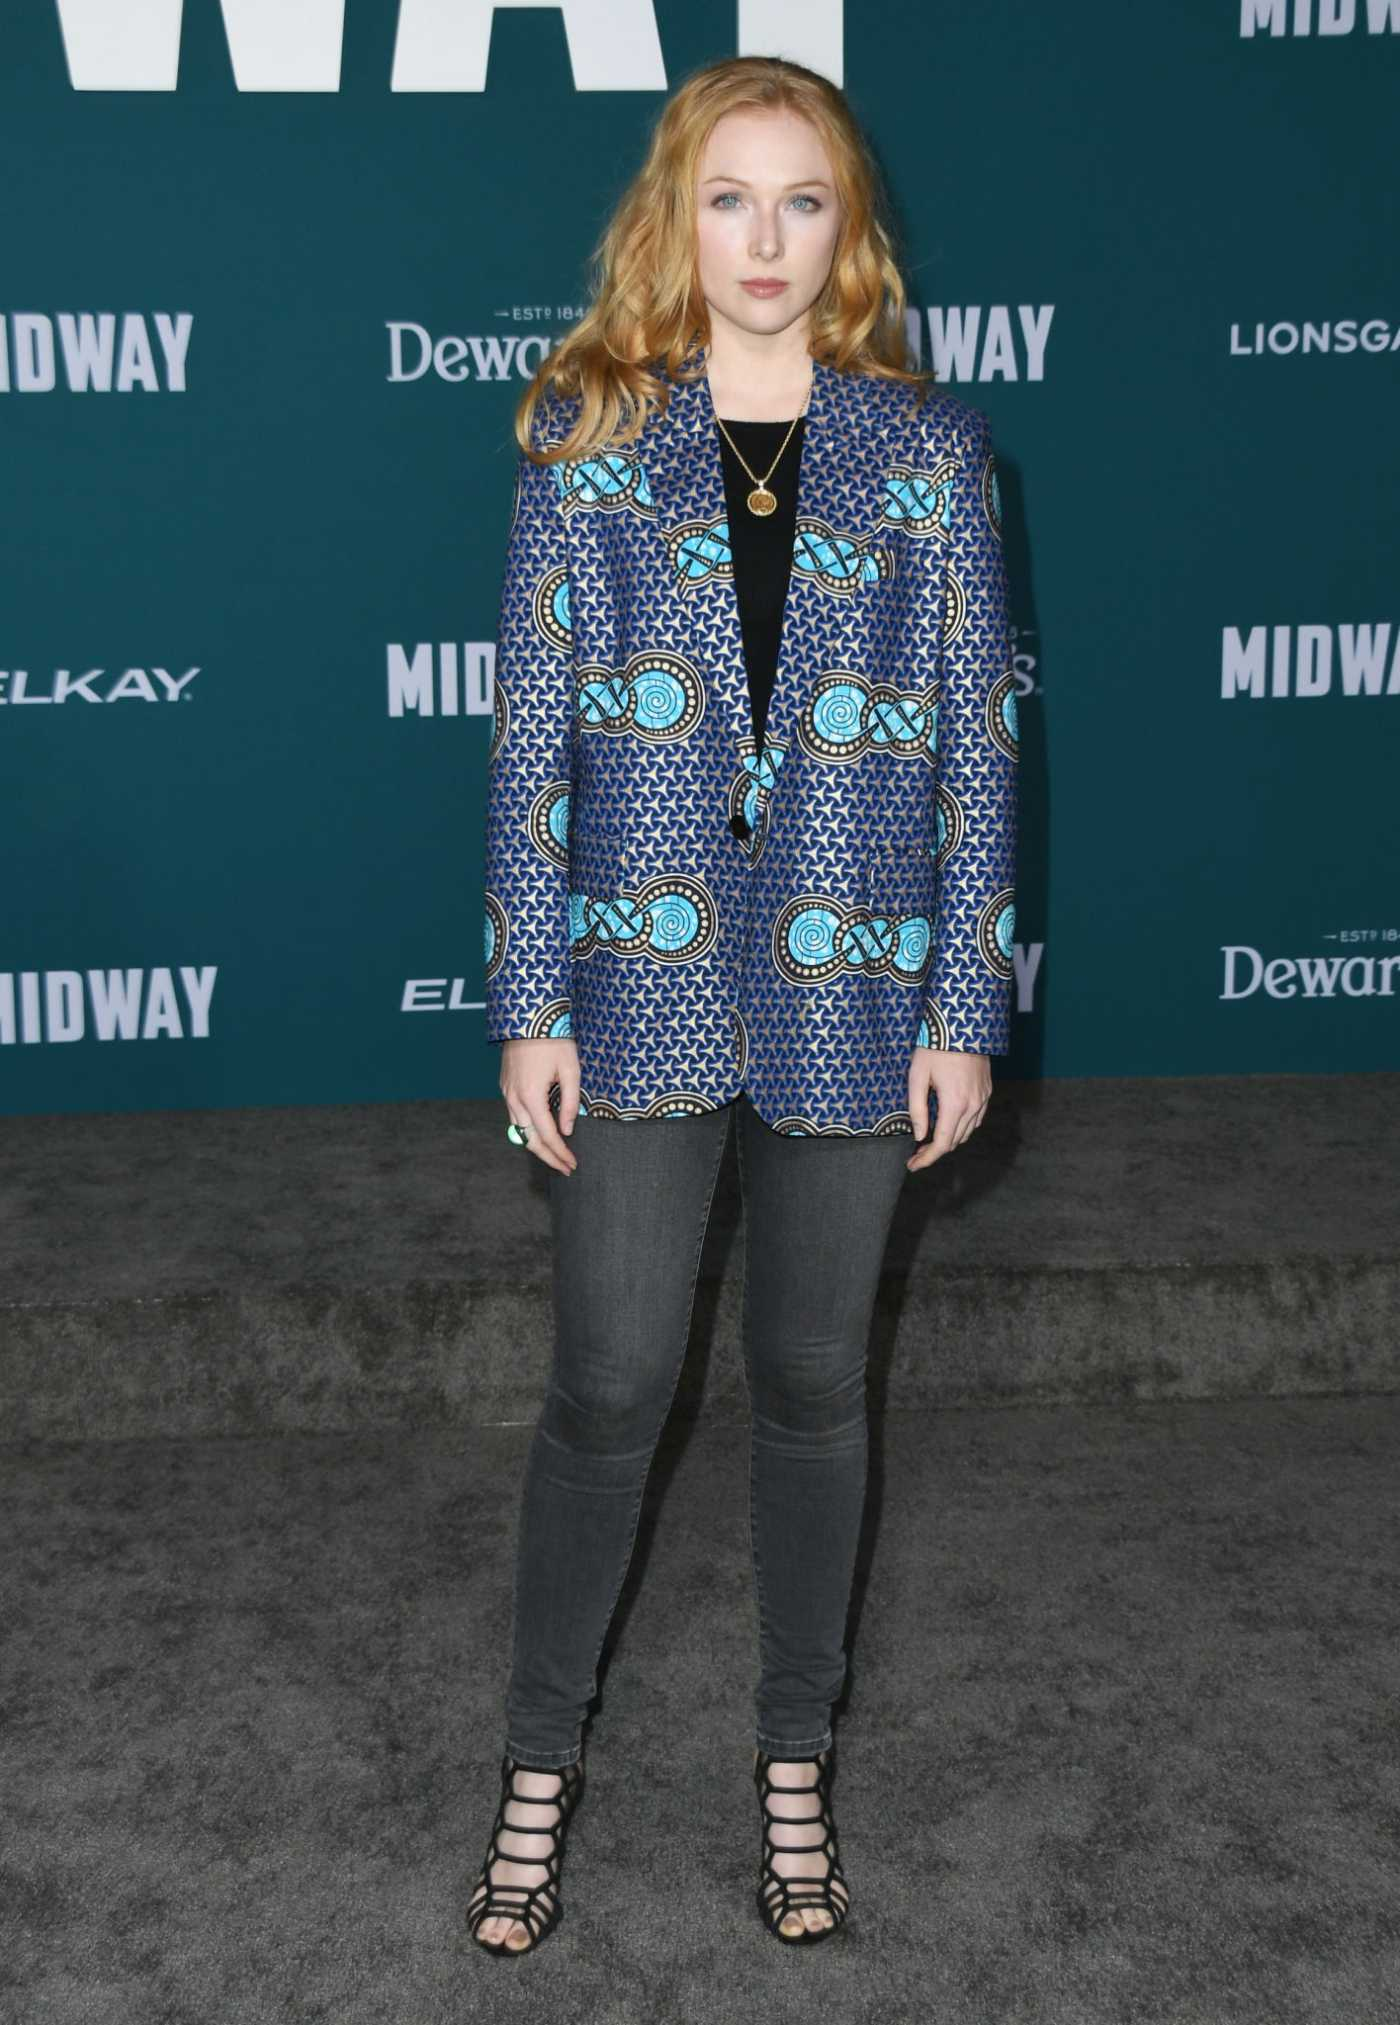 Molly Quinn Attends the Midway Premiere at Regency Village Theatre in Westwood 11/05/2019